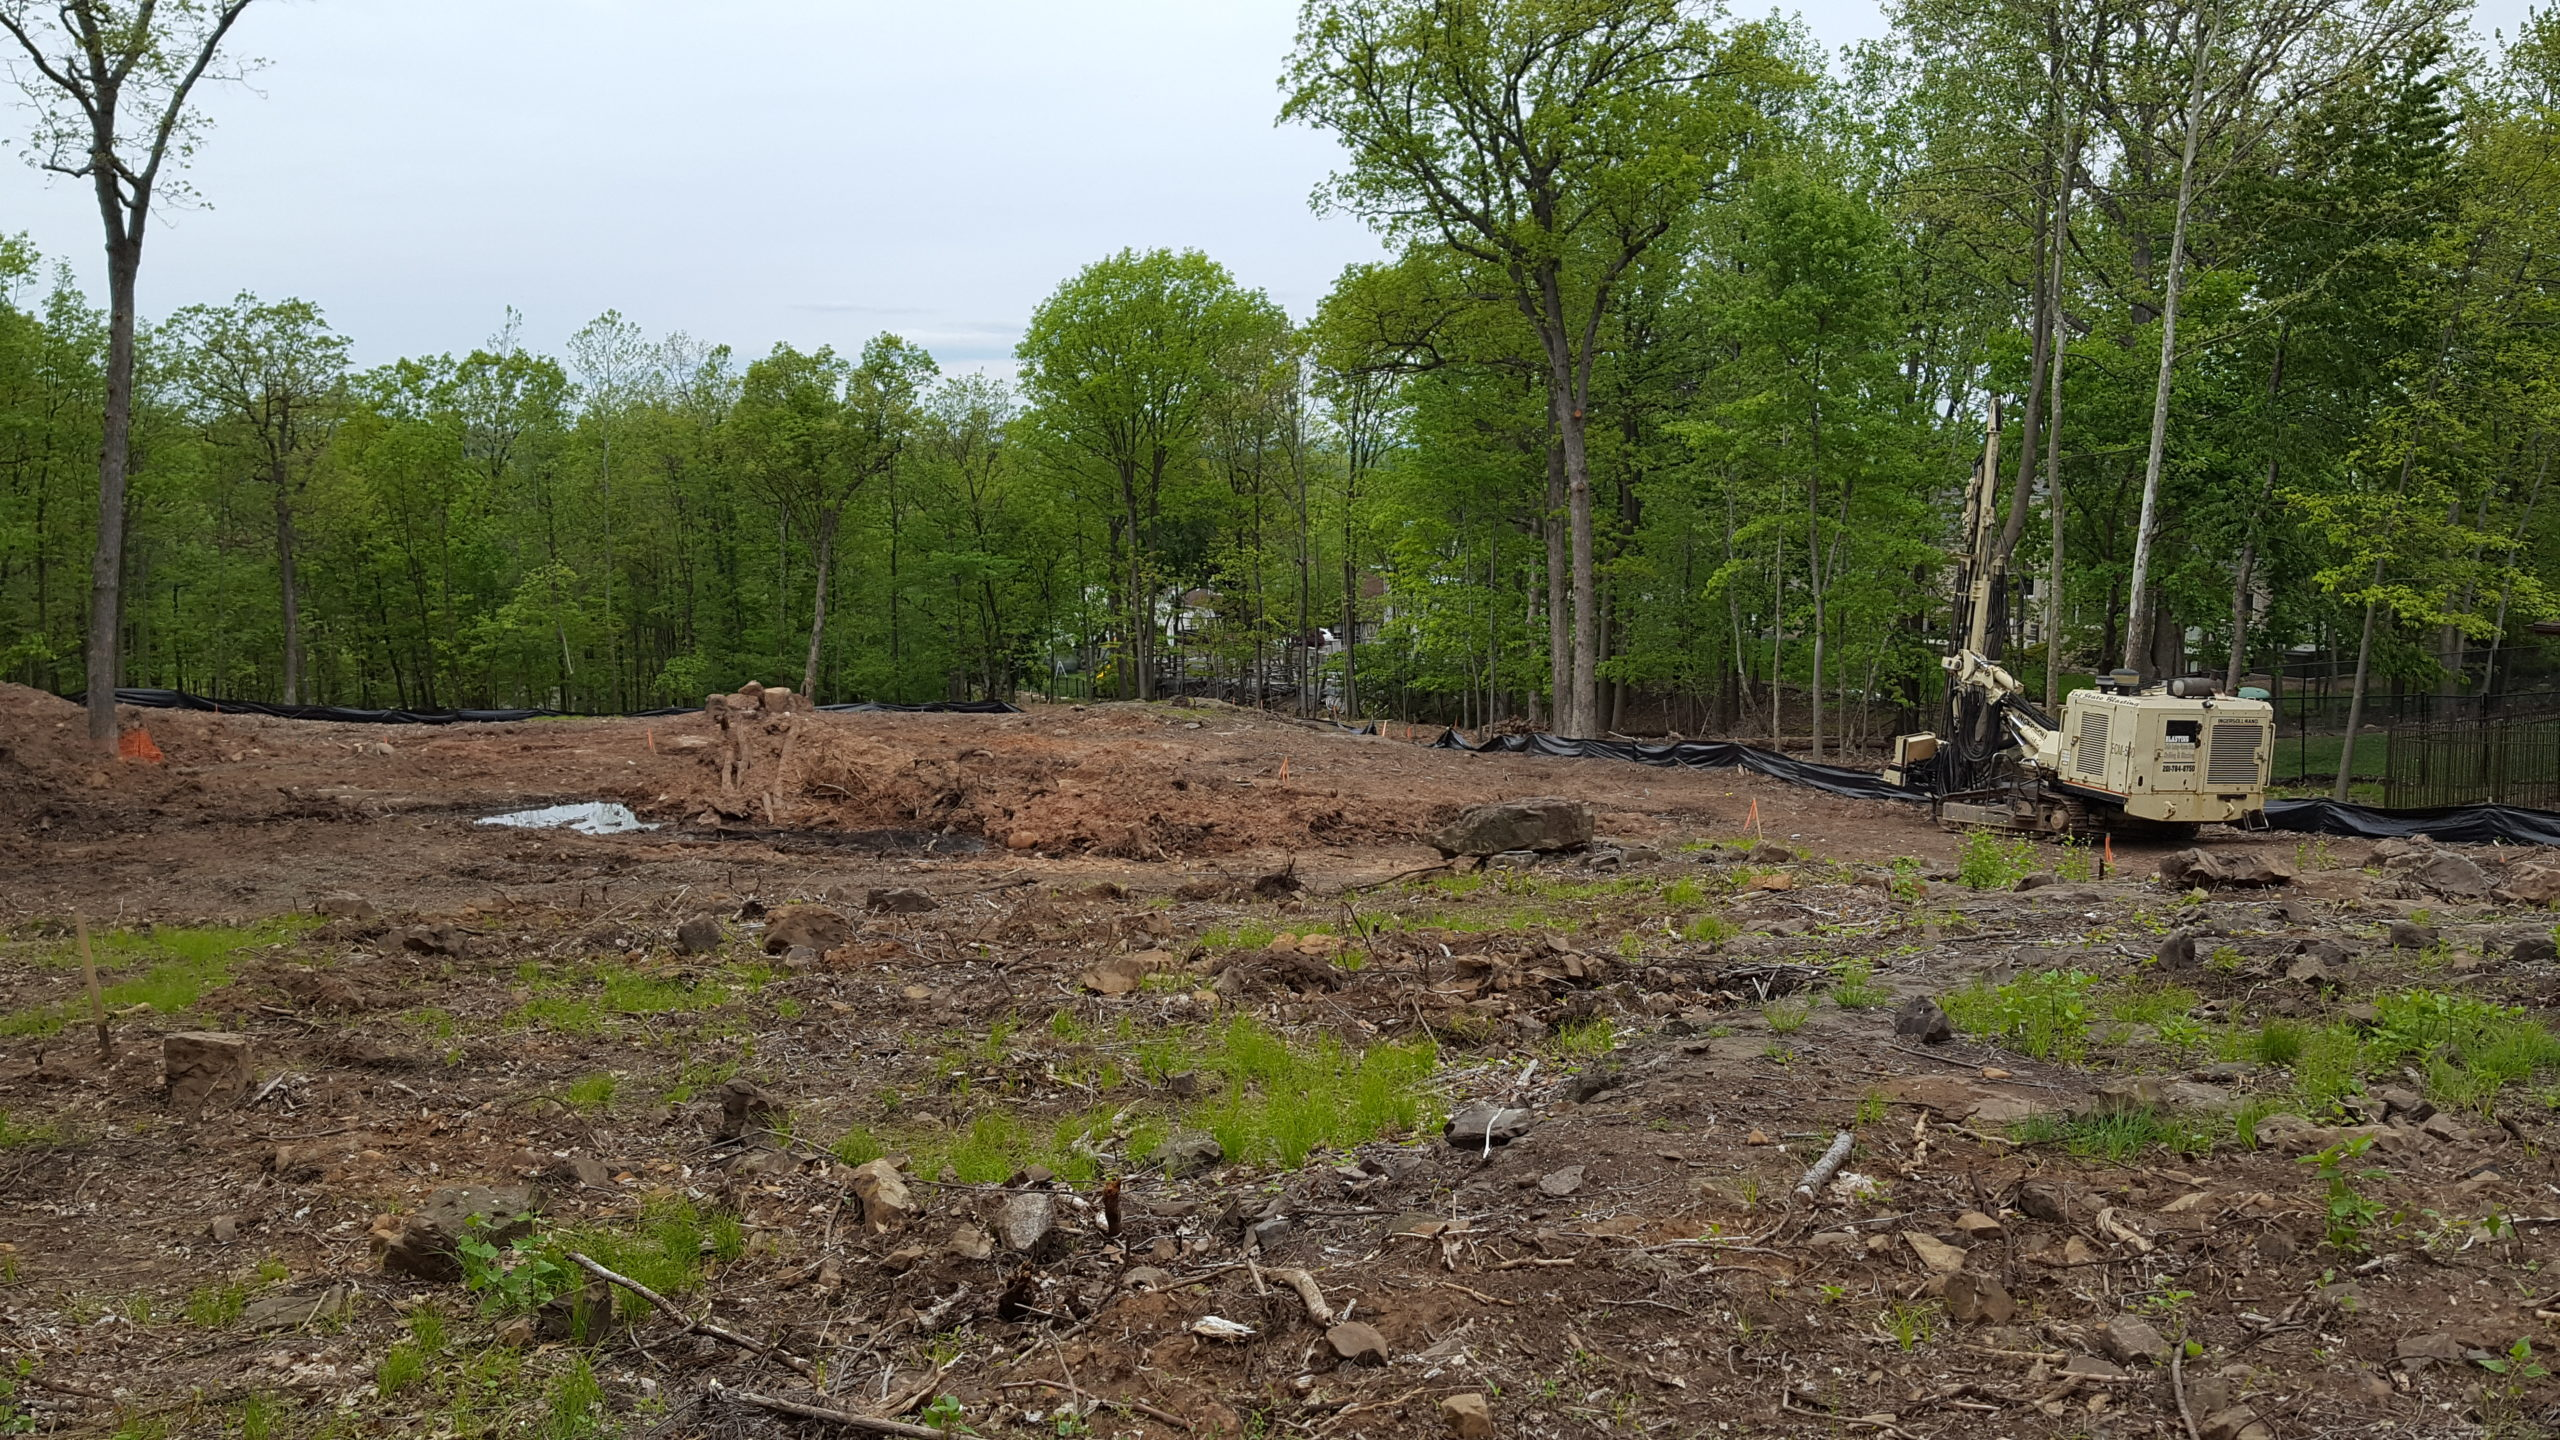 Cleared Land - NJ Tree Removal Services